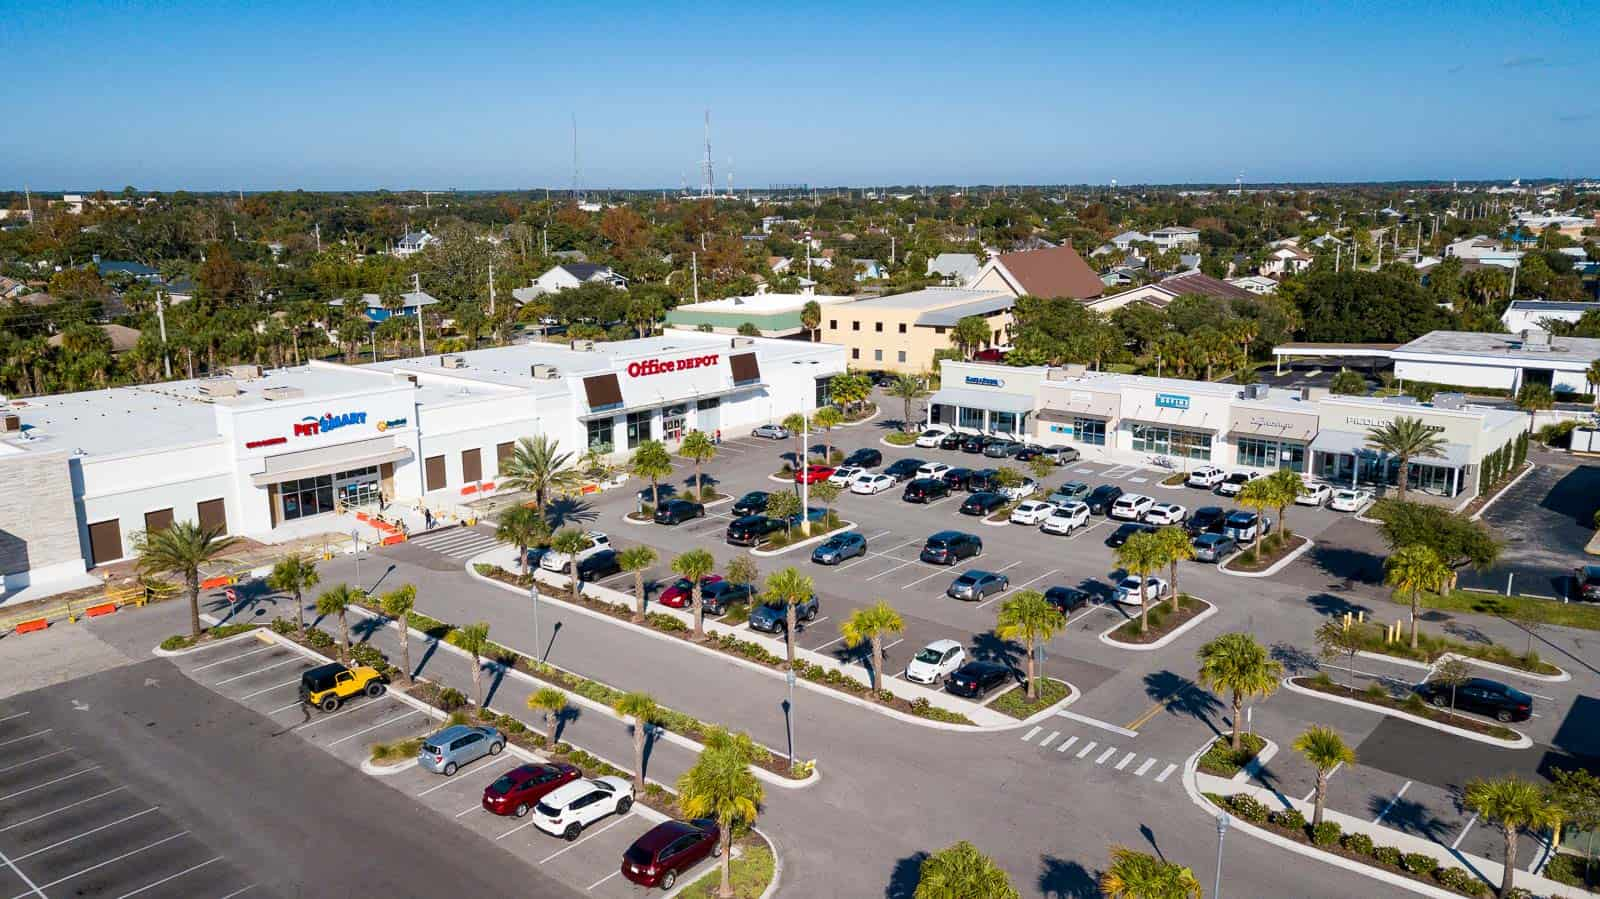 drone photo of commercial shopping plaza parking lot and storefronts in Jacksonville Beach, FL